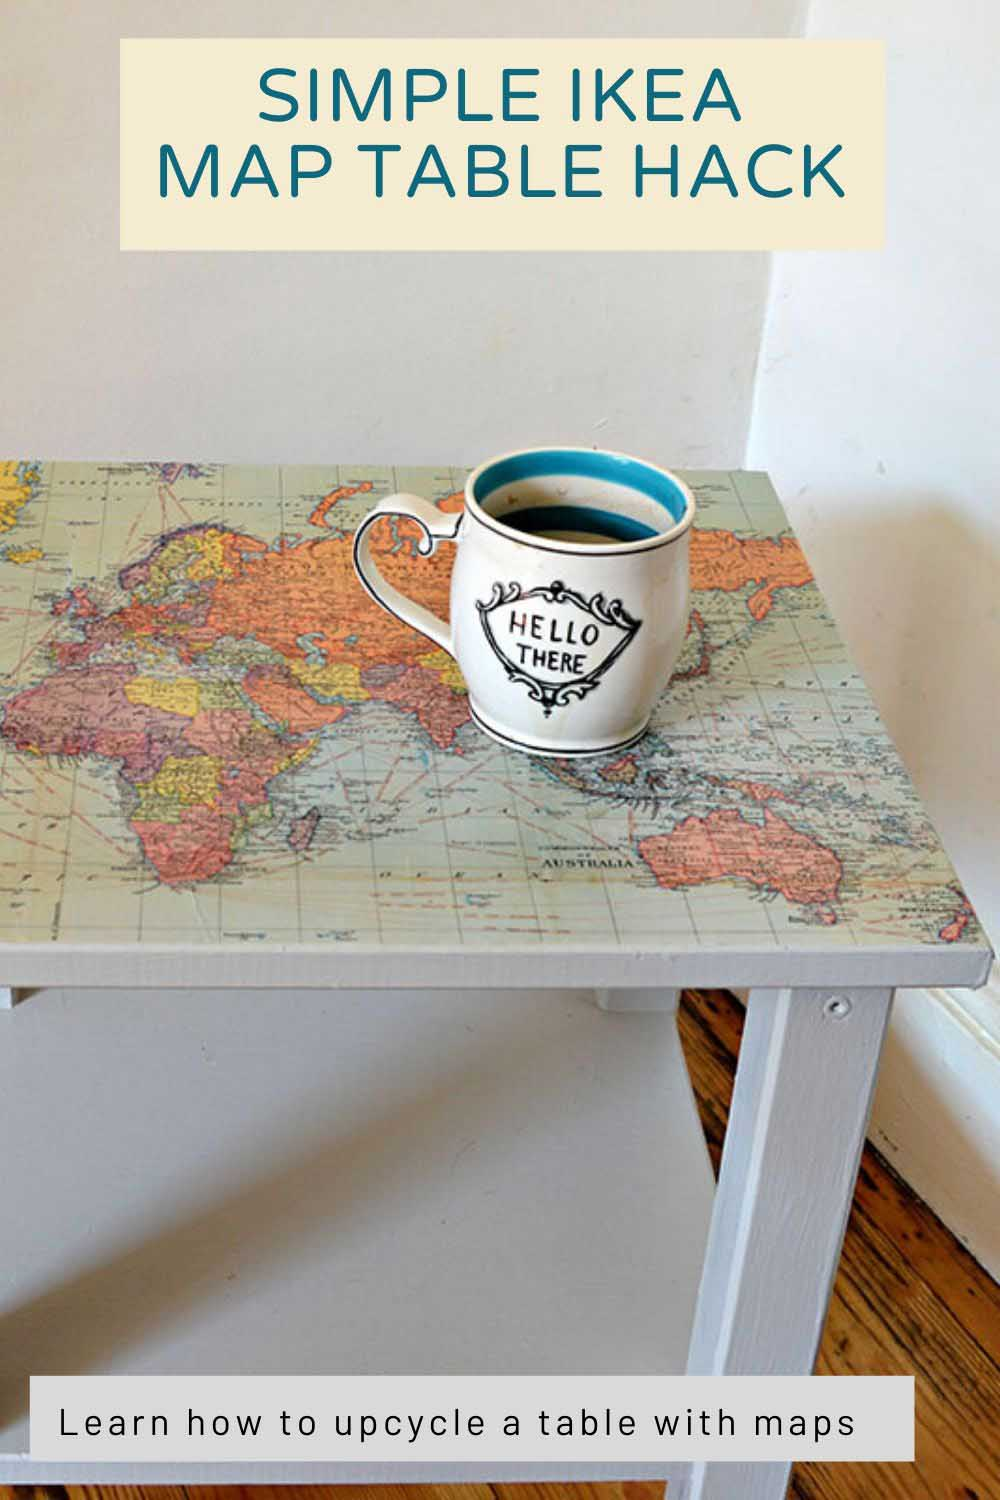 IKEA Map Table Hack